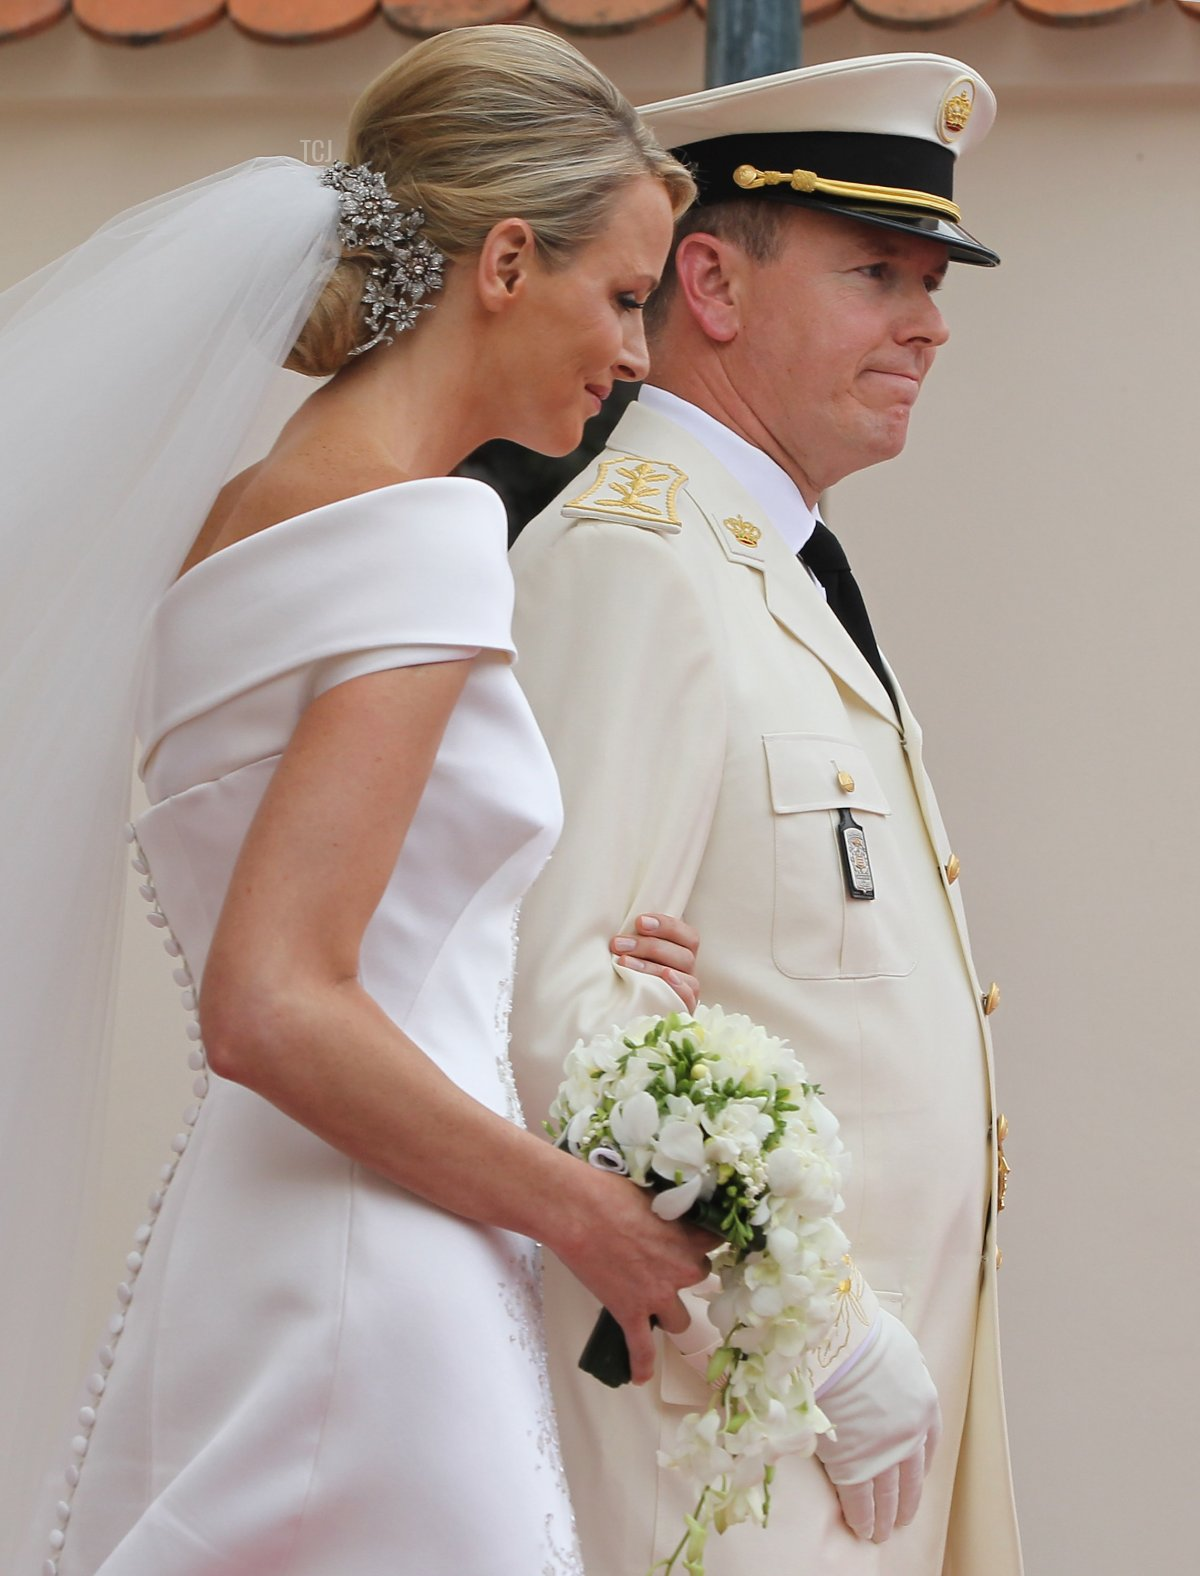 Princess Charlene of Monaco and Prince Albert II of Monaco leave the Prince's Palace after the religious ceremony of their Royal Wedding on July 2, 2011 in Monaco